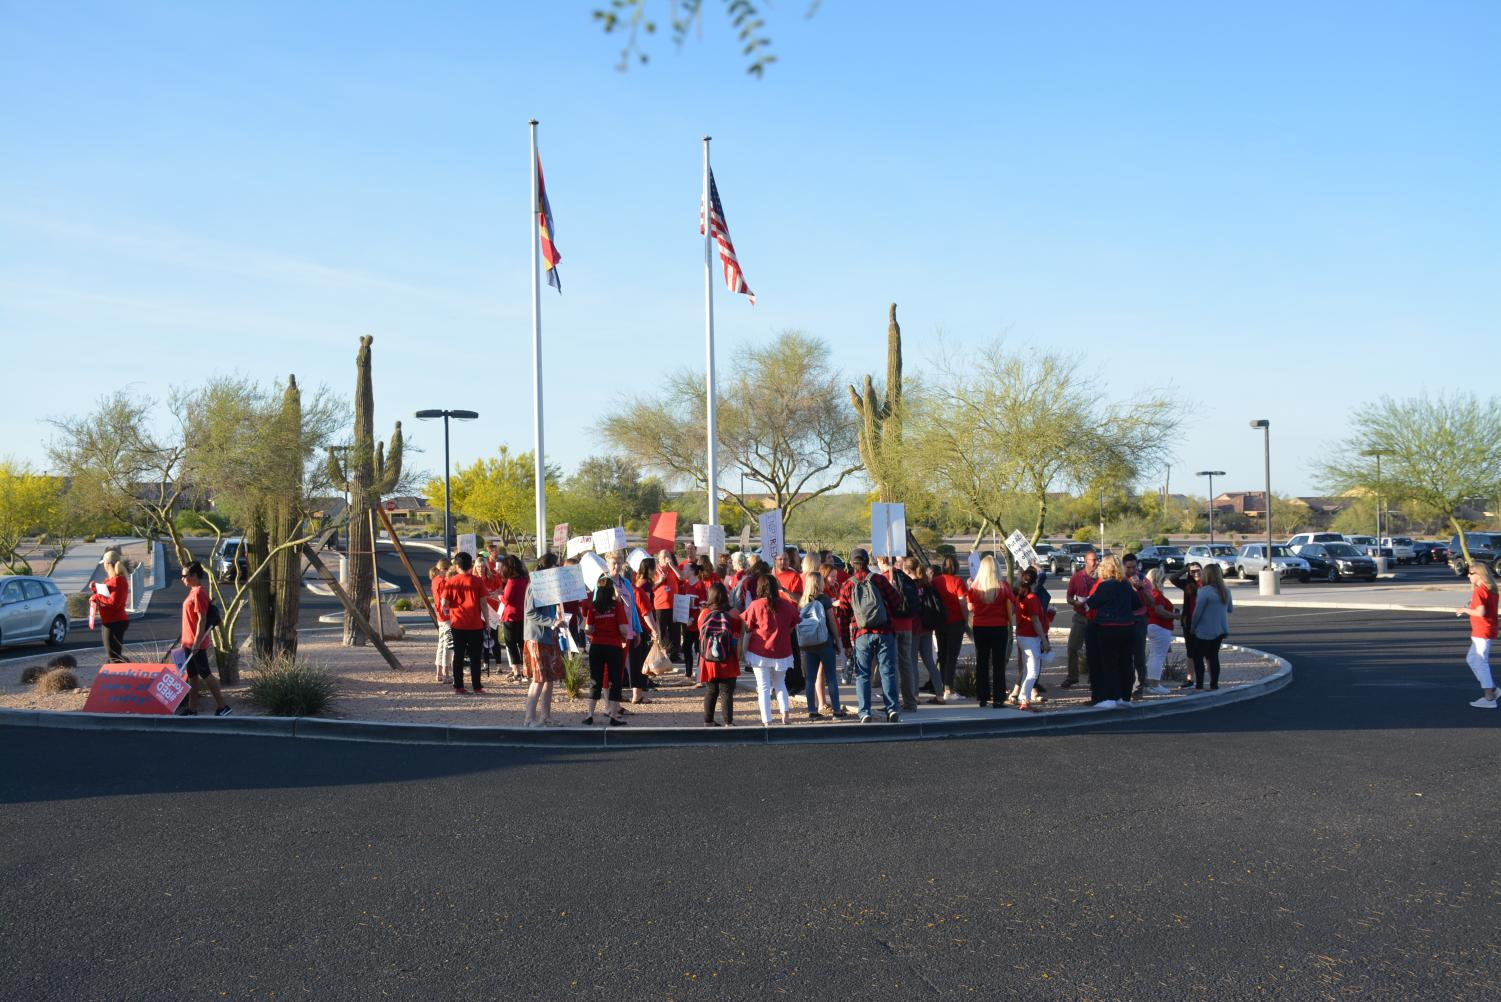 Supporters+of+REDforED+picket+at+front+of+the+school+under+the+flag+before+school+started